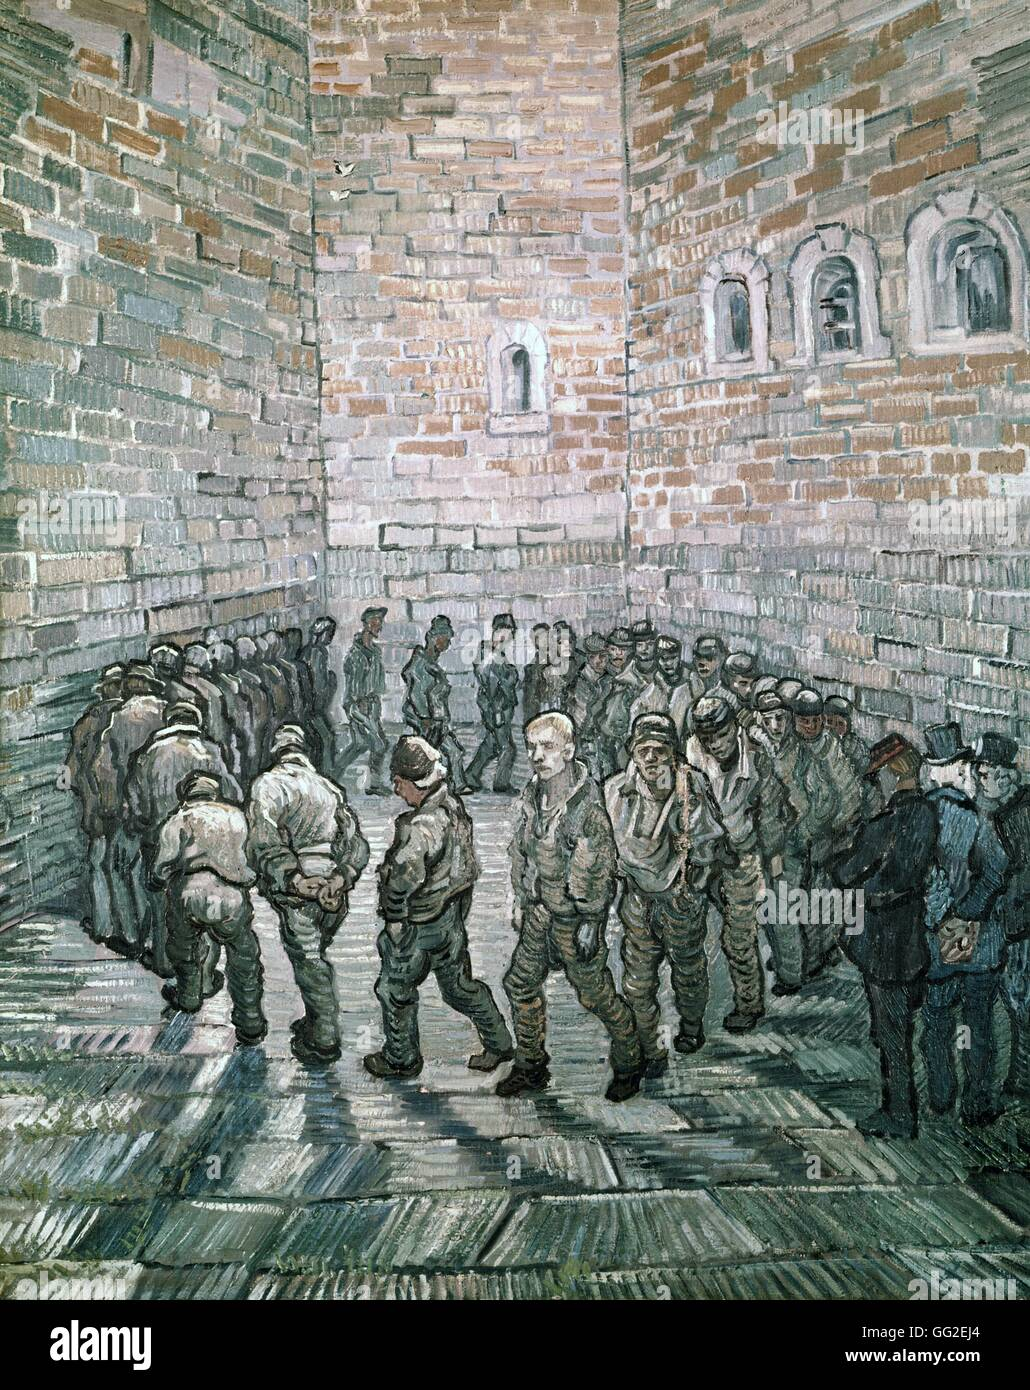 Vincent van Gogh Dutch school Prisoners' Round or Prisoners Exercising 1890 Oil on canvas (80 x 64 cm) Moscow, The Stock Photo